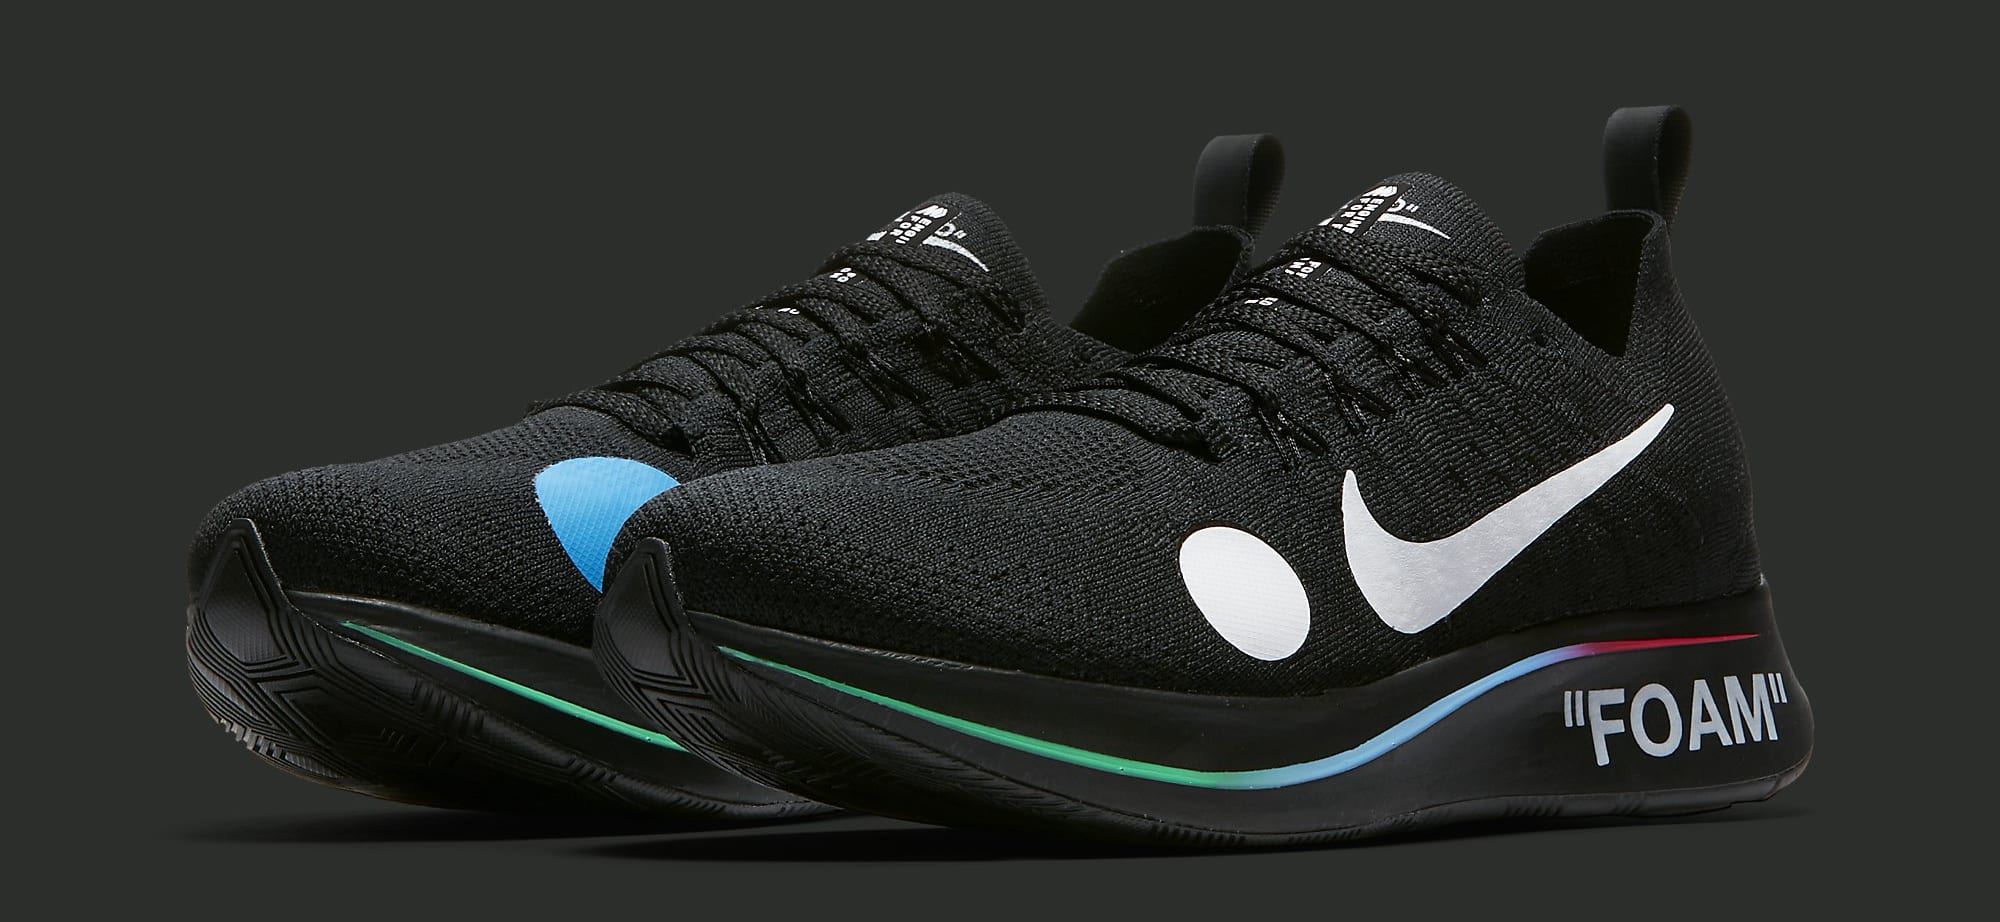 Off-White x Nike Zoom Fly Mercurial Flyknit 'Black' AO2115-001 (Pair)